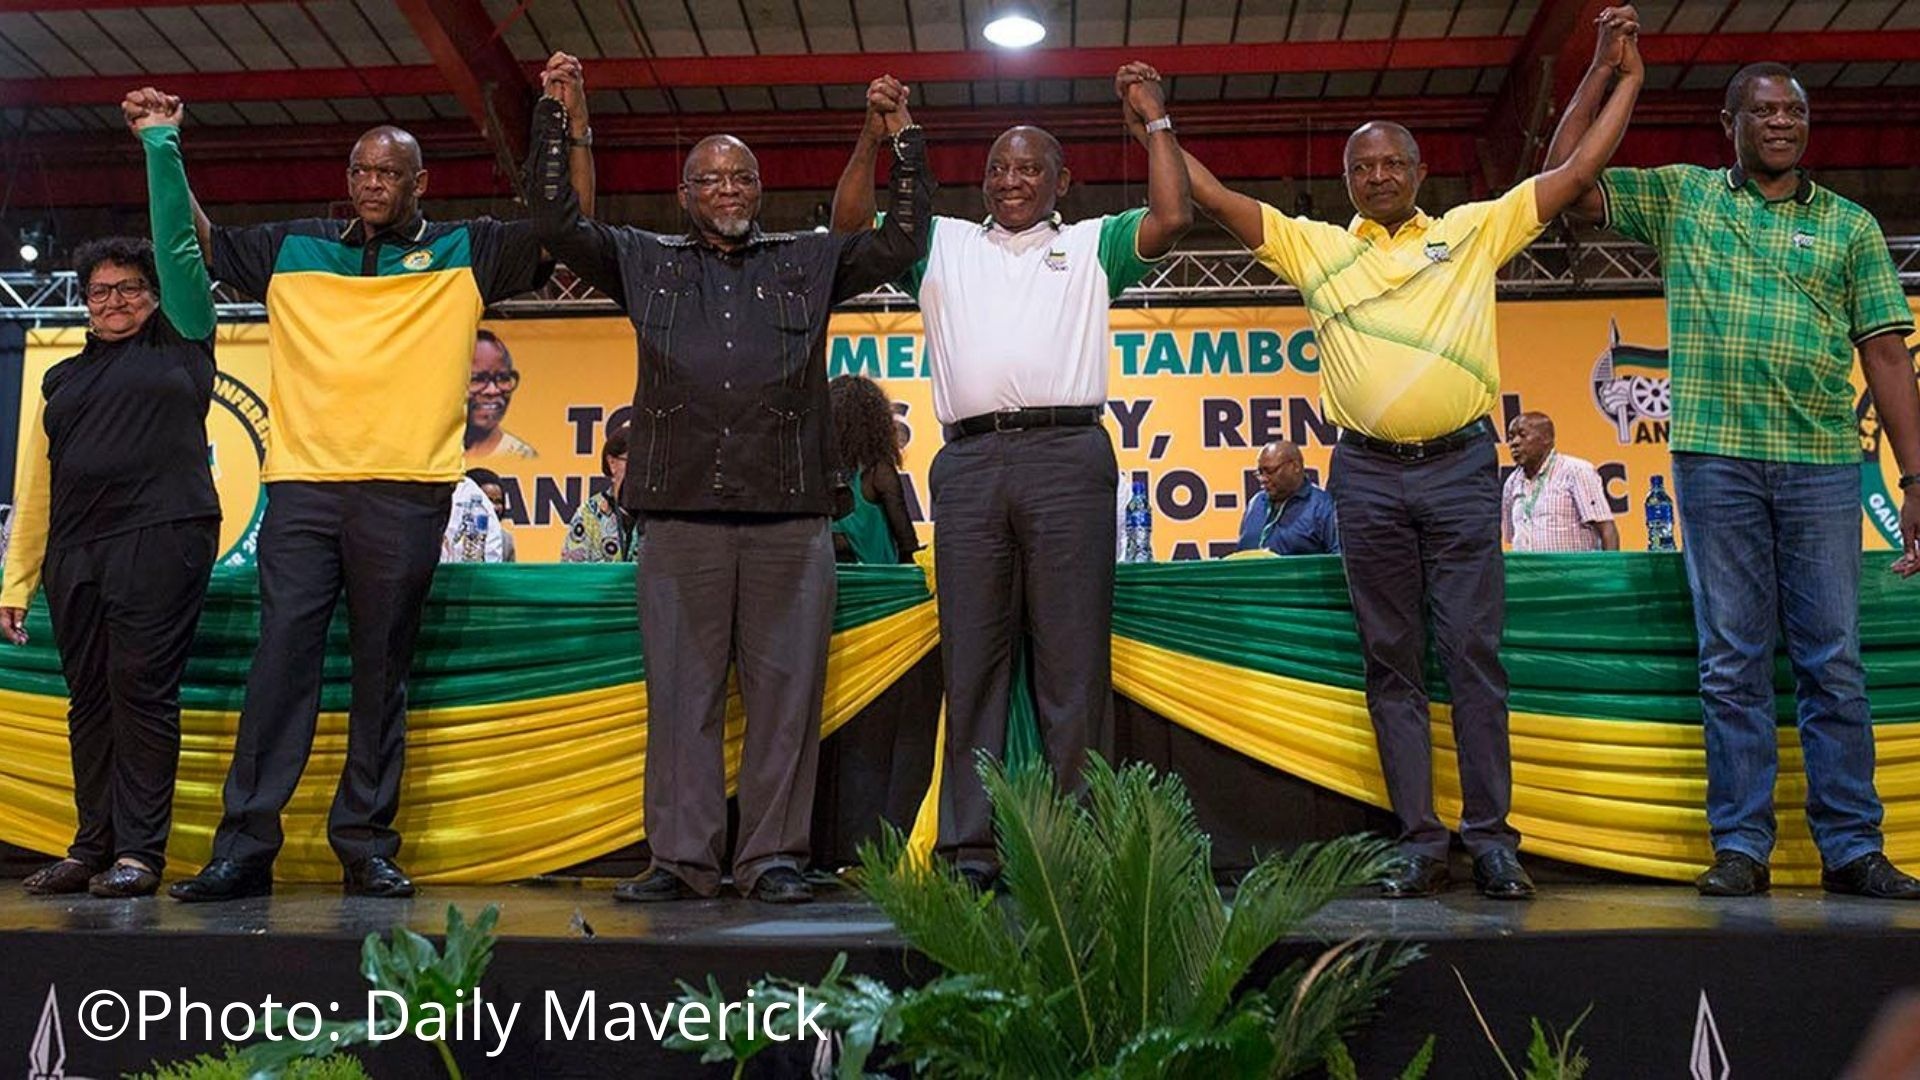 ANC in Crisis? Where to for South Africa?